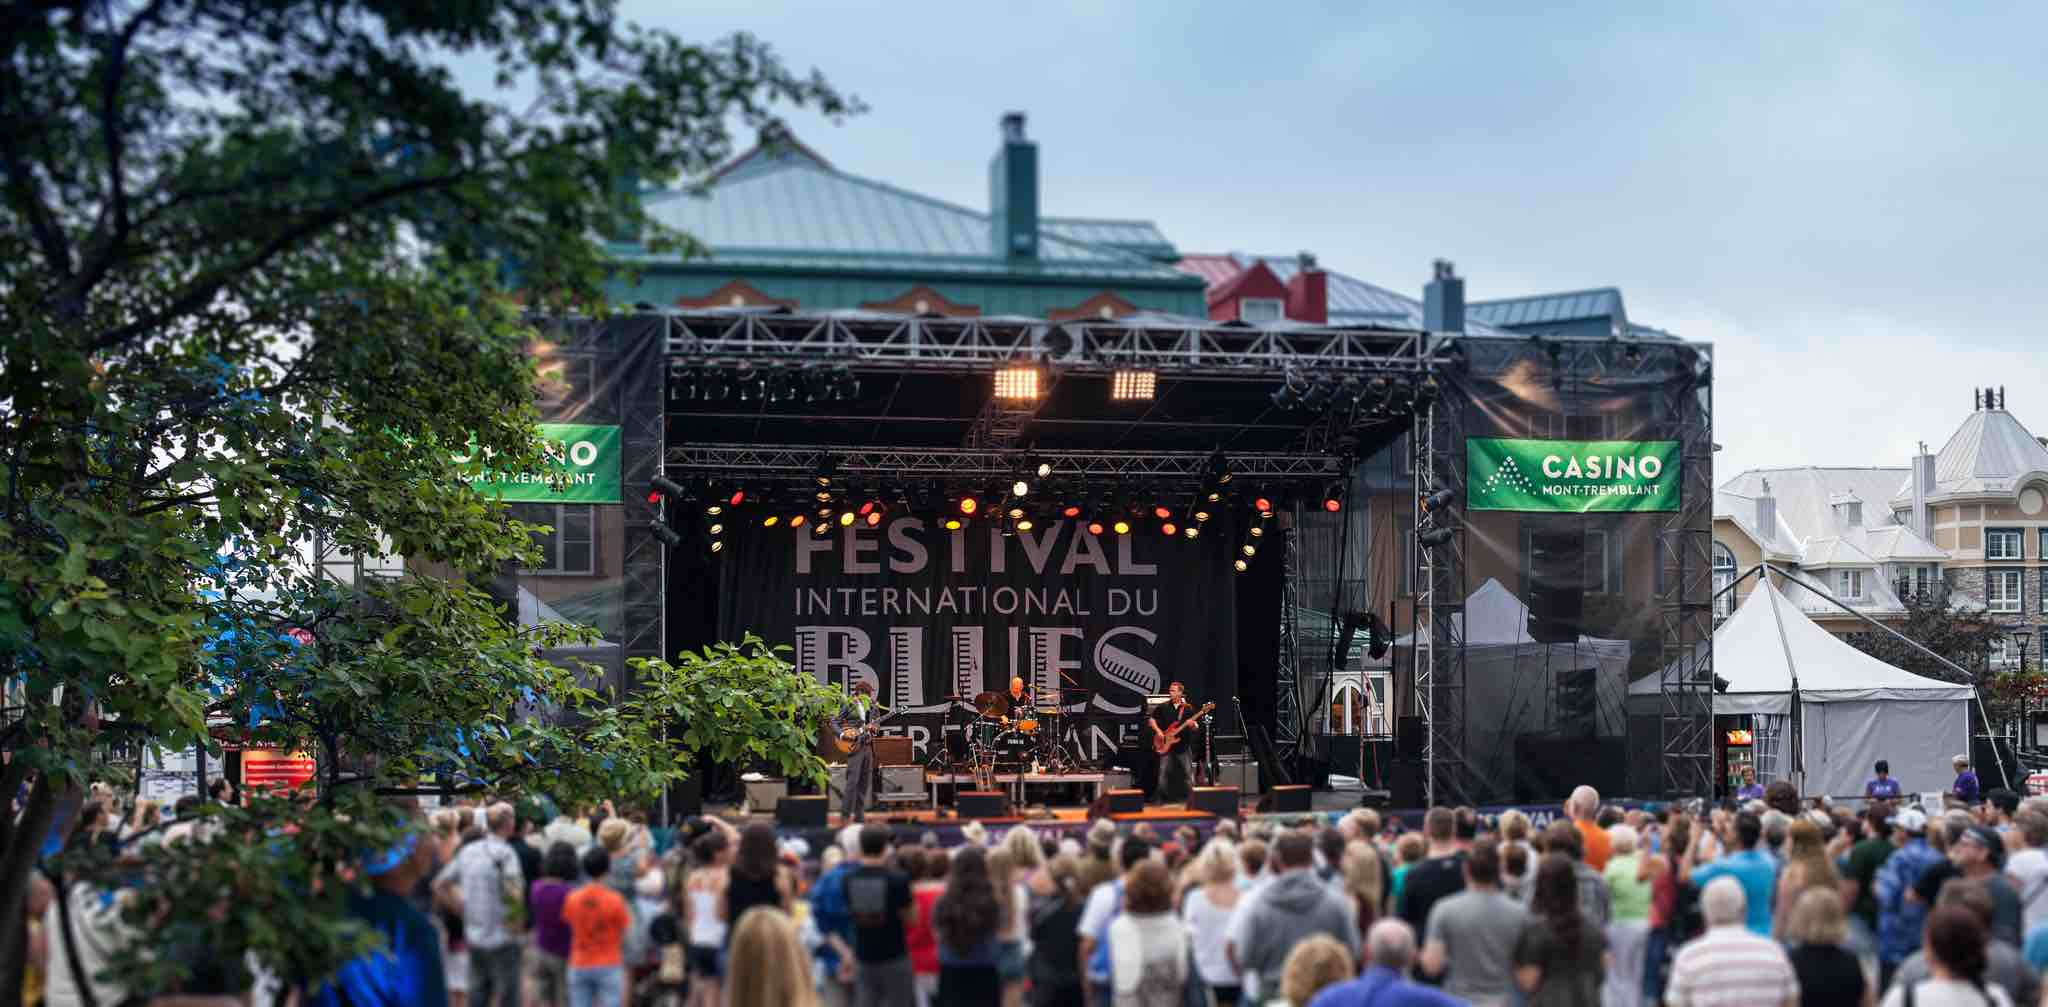 Fun things to do in Mont-Tremblant include festivals and concerts